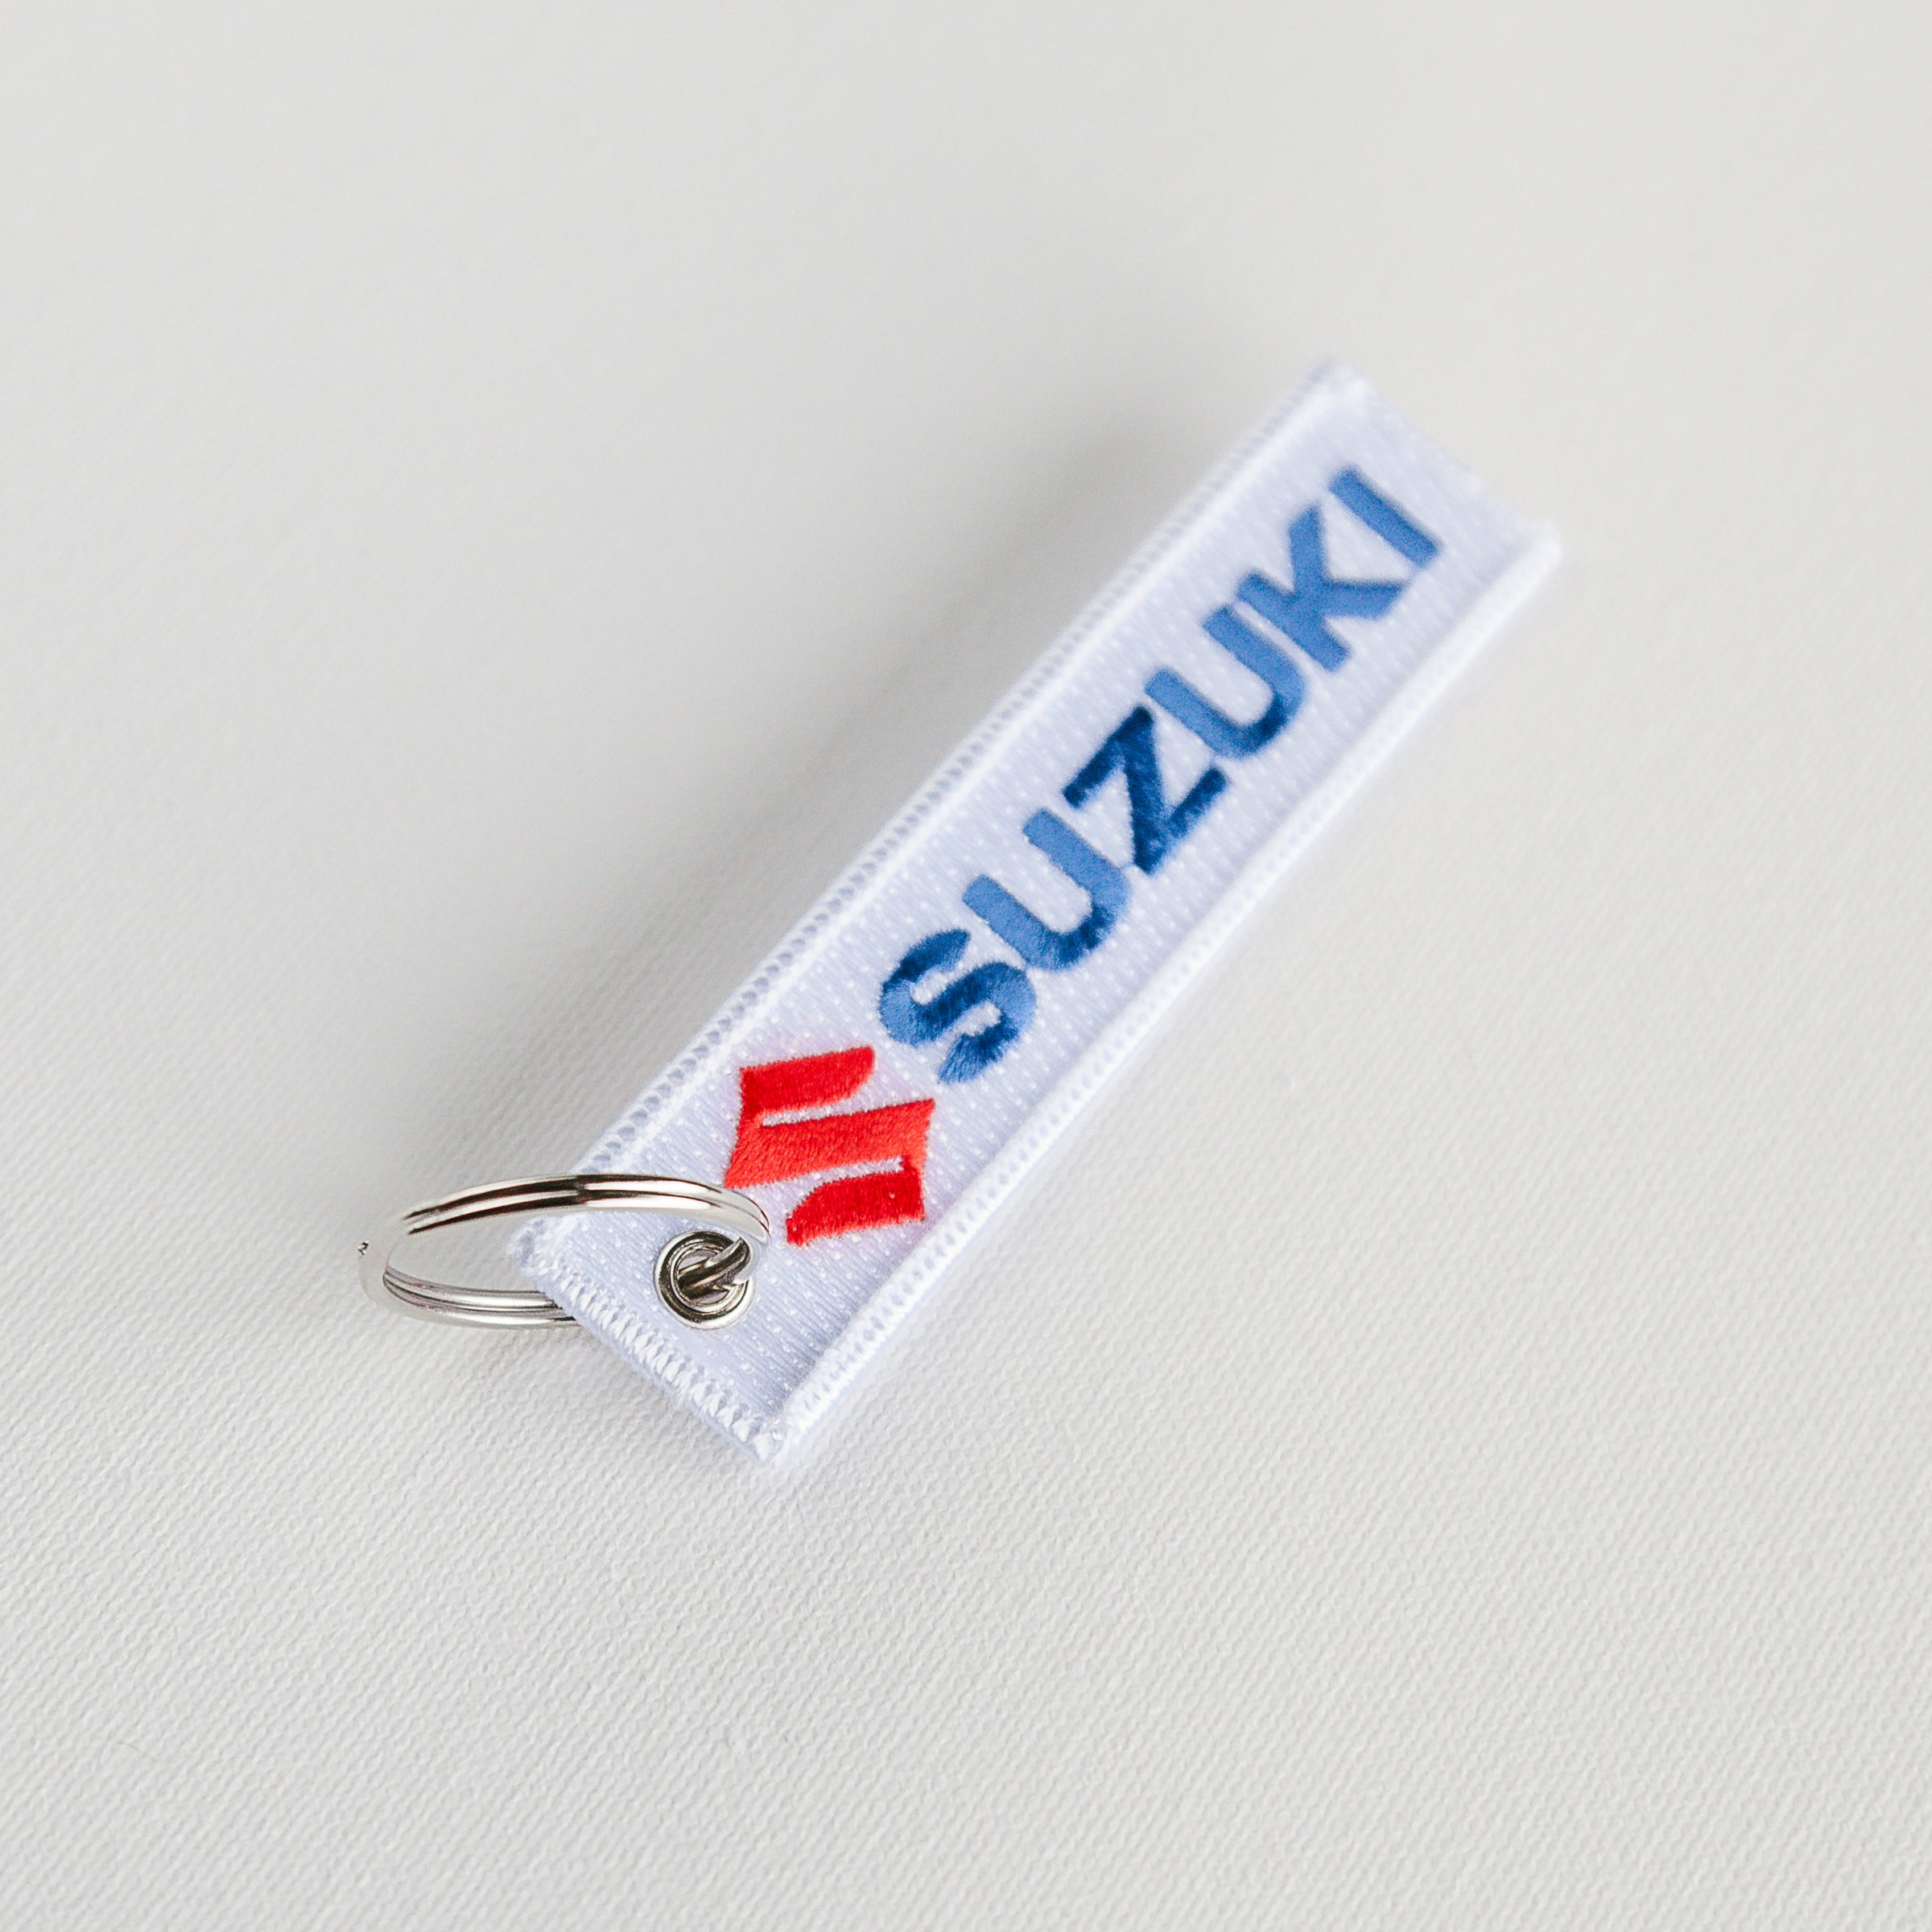 Dreamcycle Motorcycle Museum |  White suzuki keychain on white background.